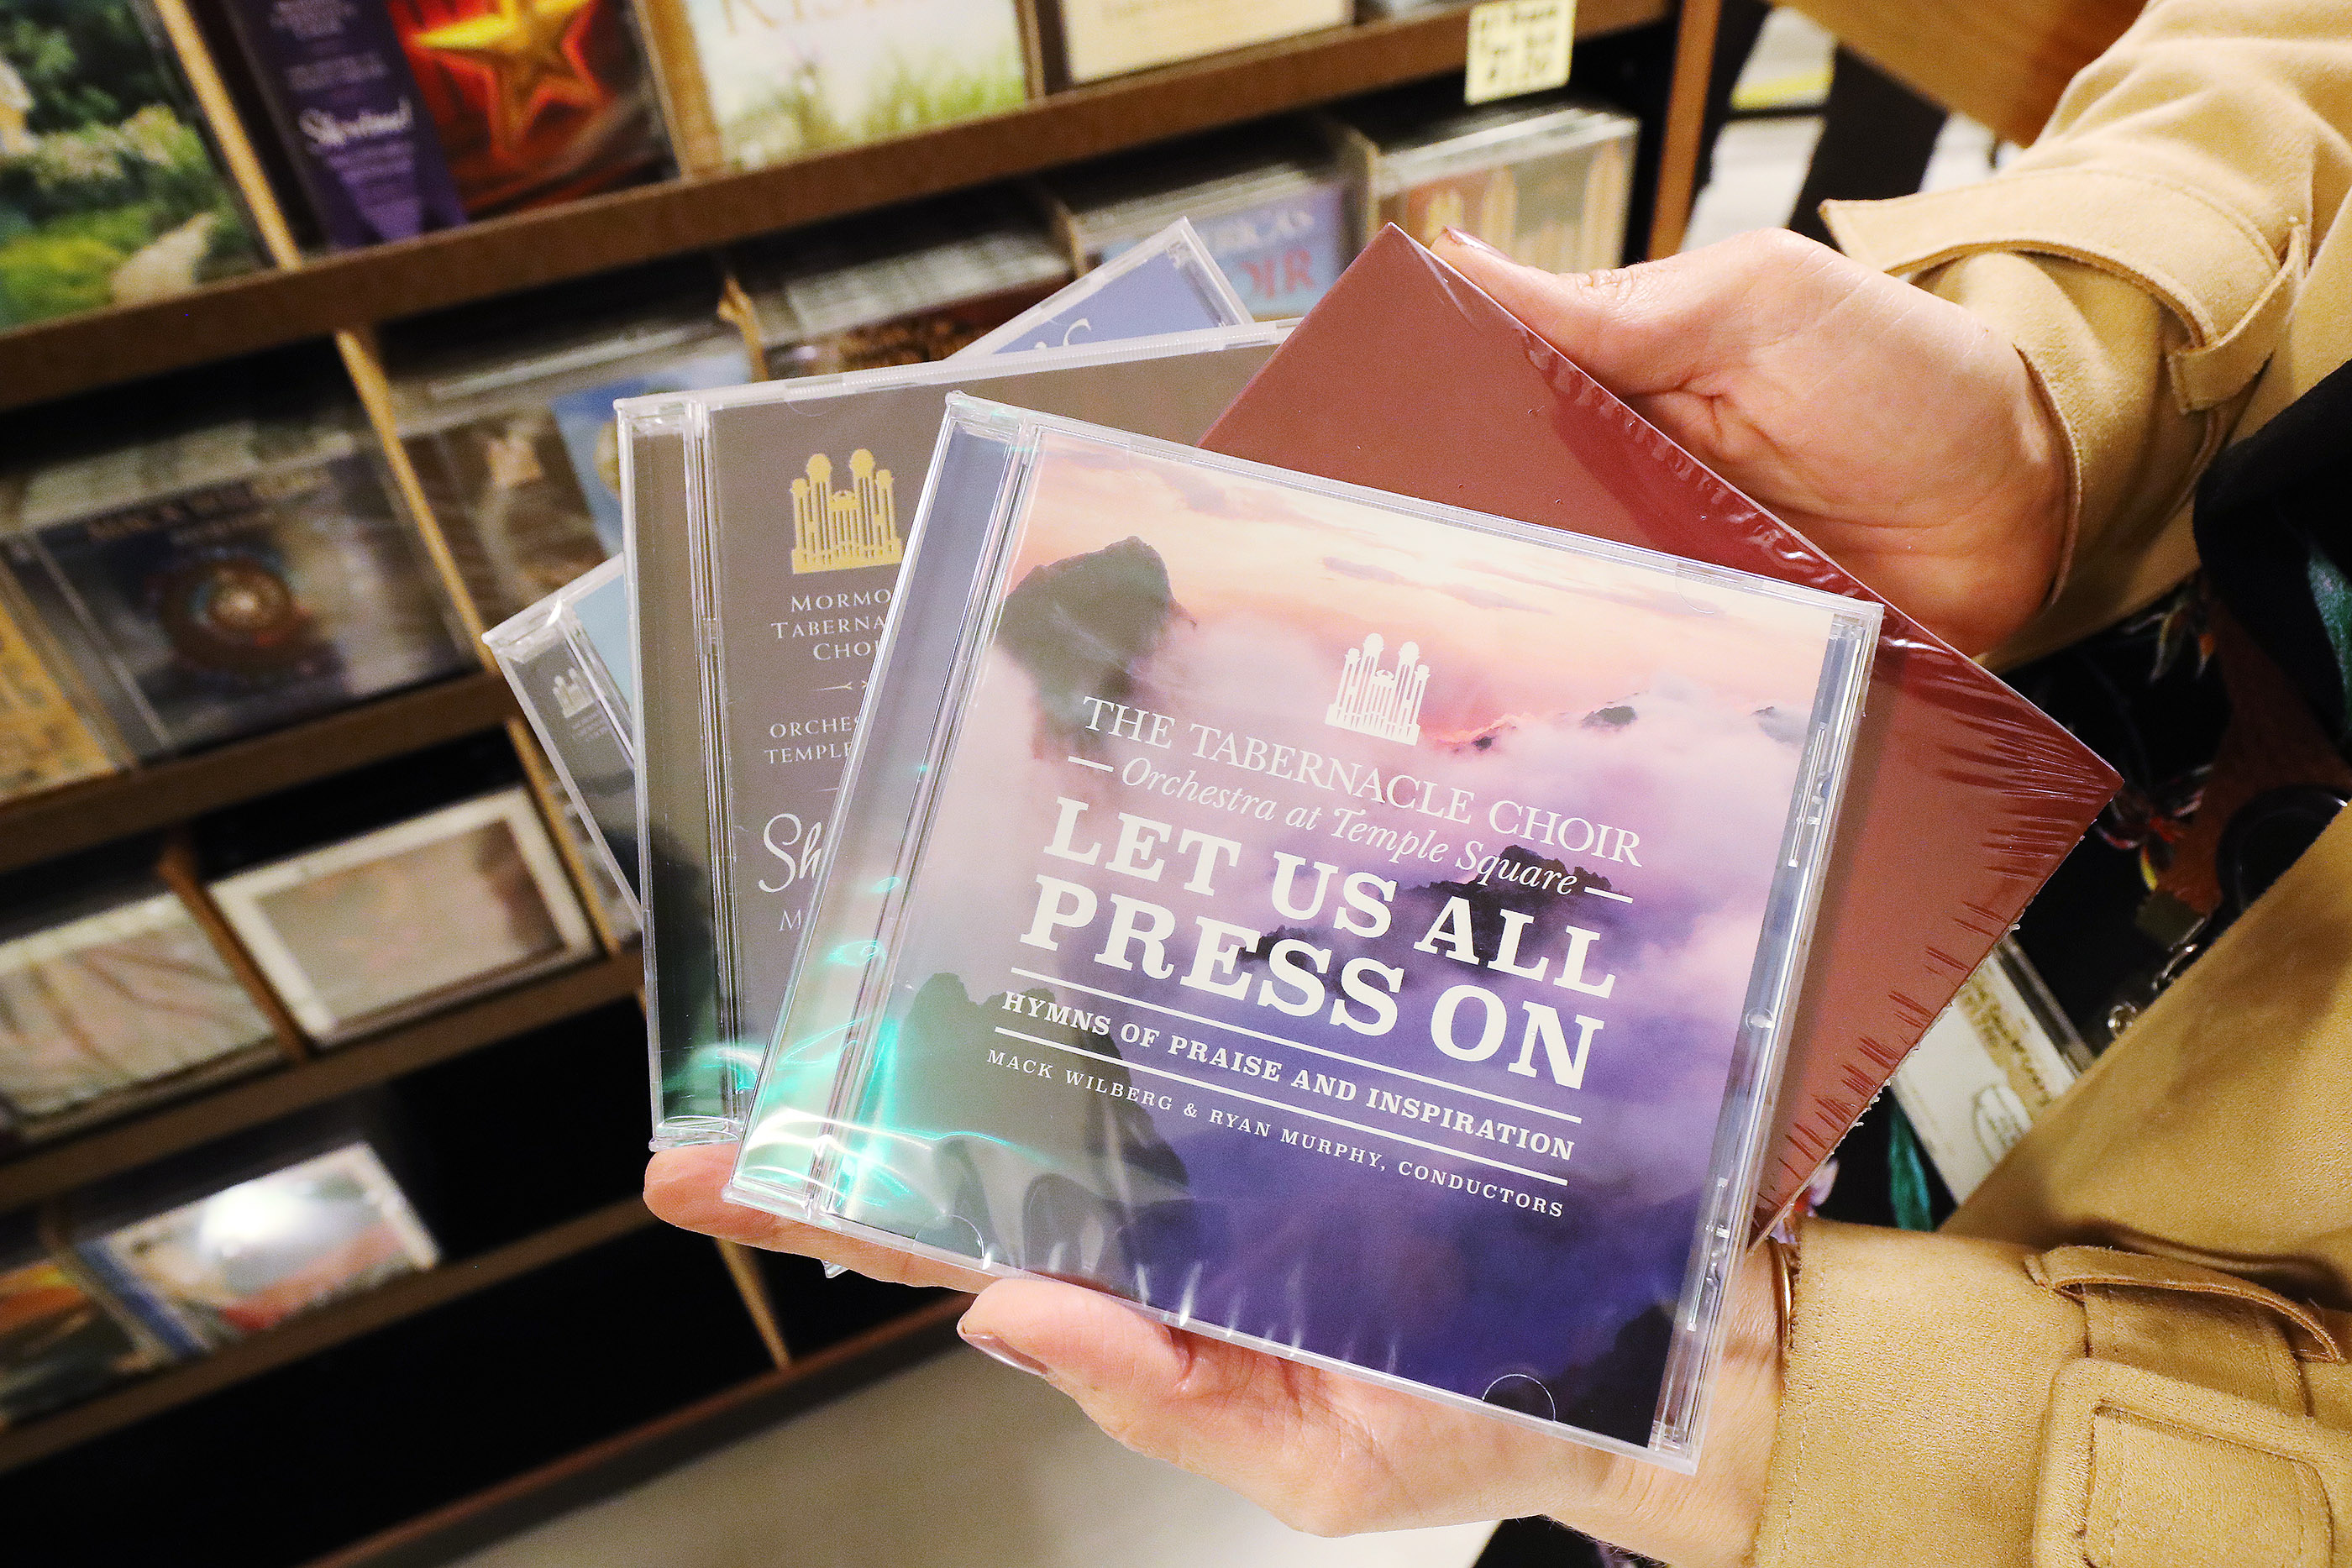 CDs of The Tabernacle Choir at Temple Square in Salt Lake City on Thursday, April 11, 2019. Four people were selected through social media to sing with the choir.